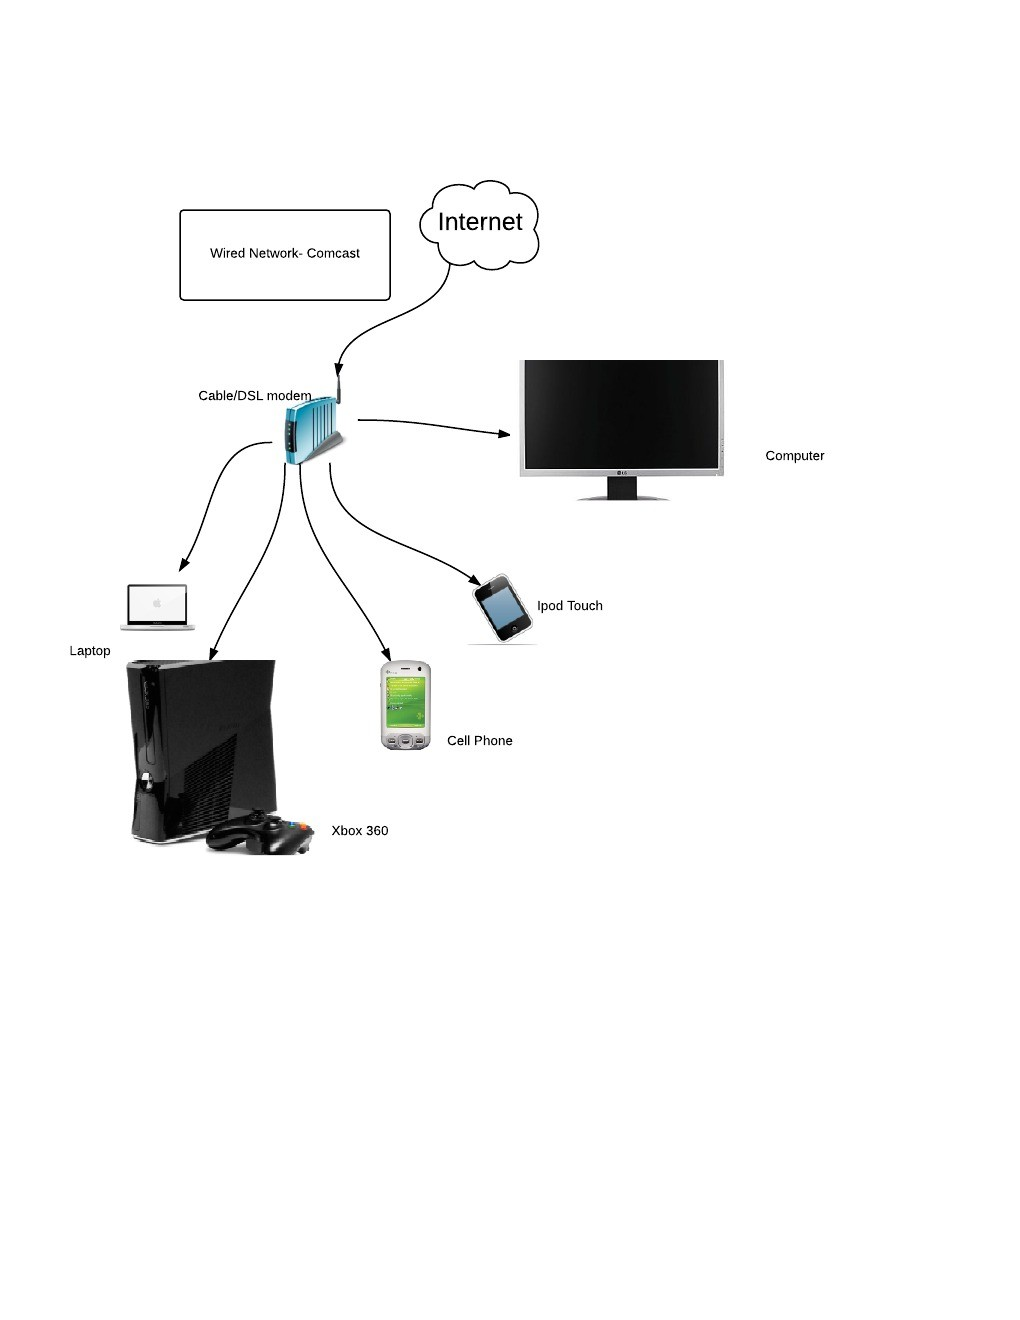 Torres, Brian, Lucid Chart, Home Network — Science